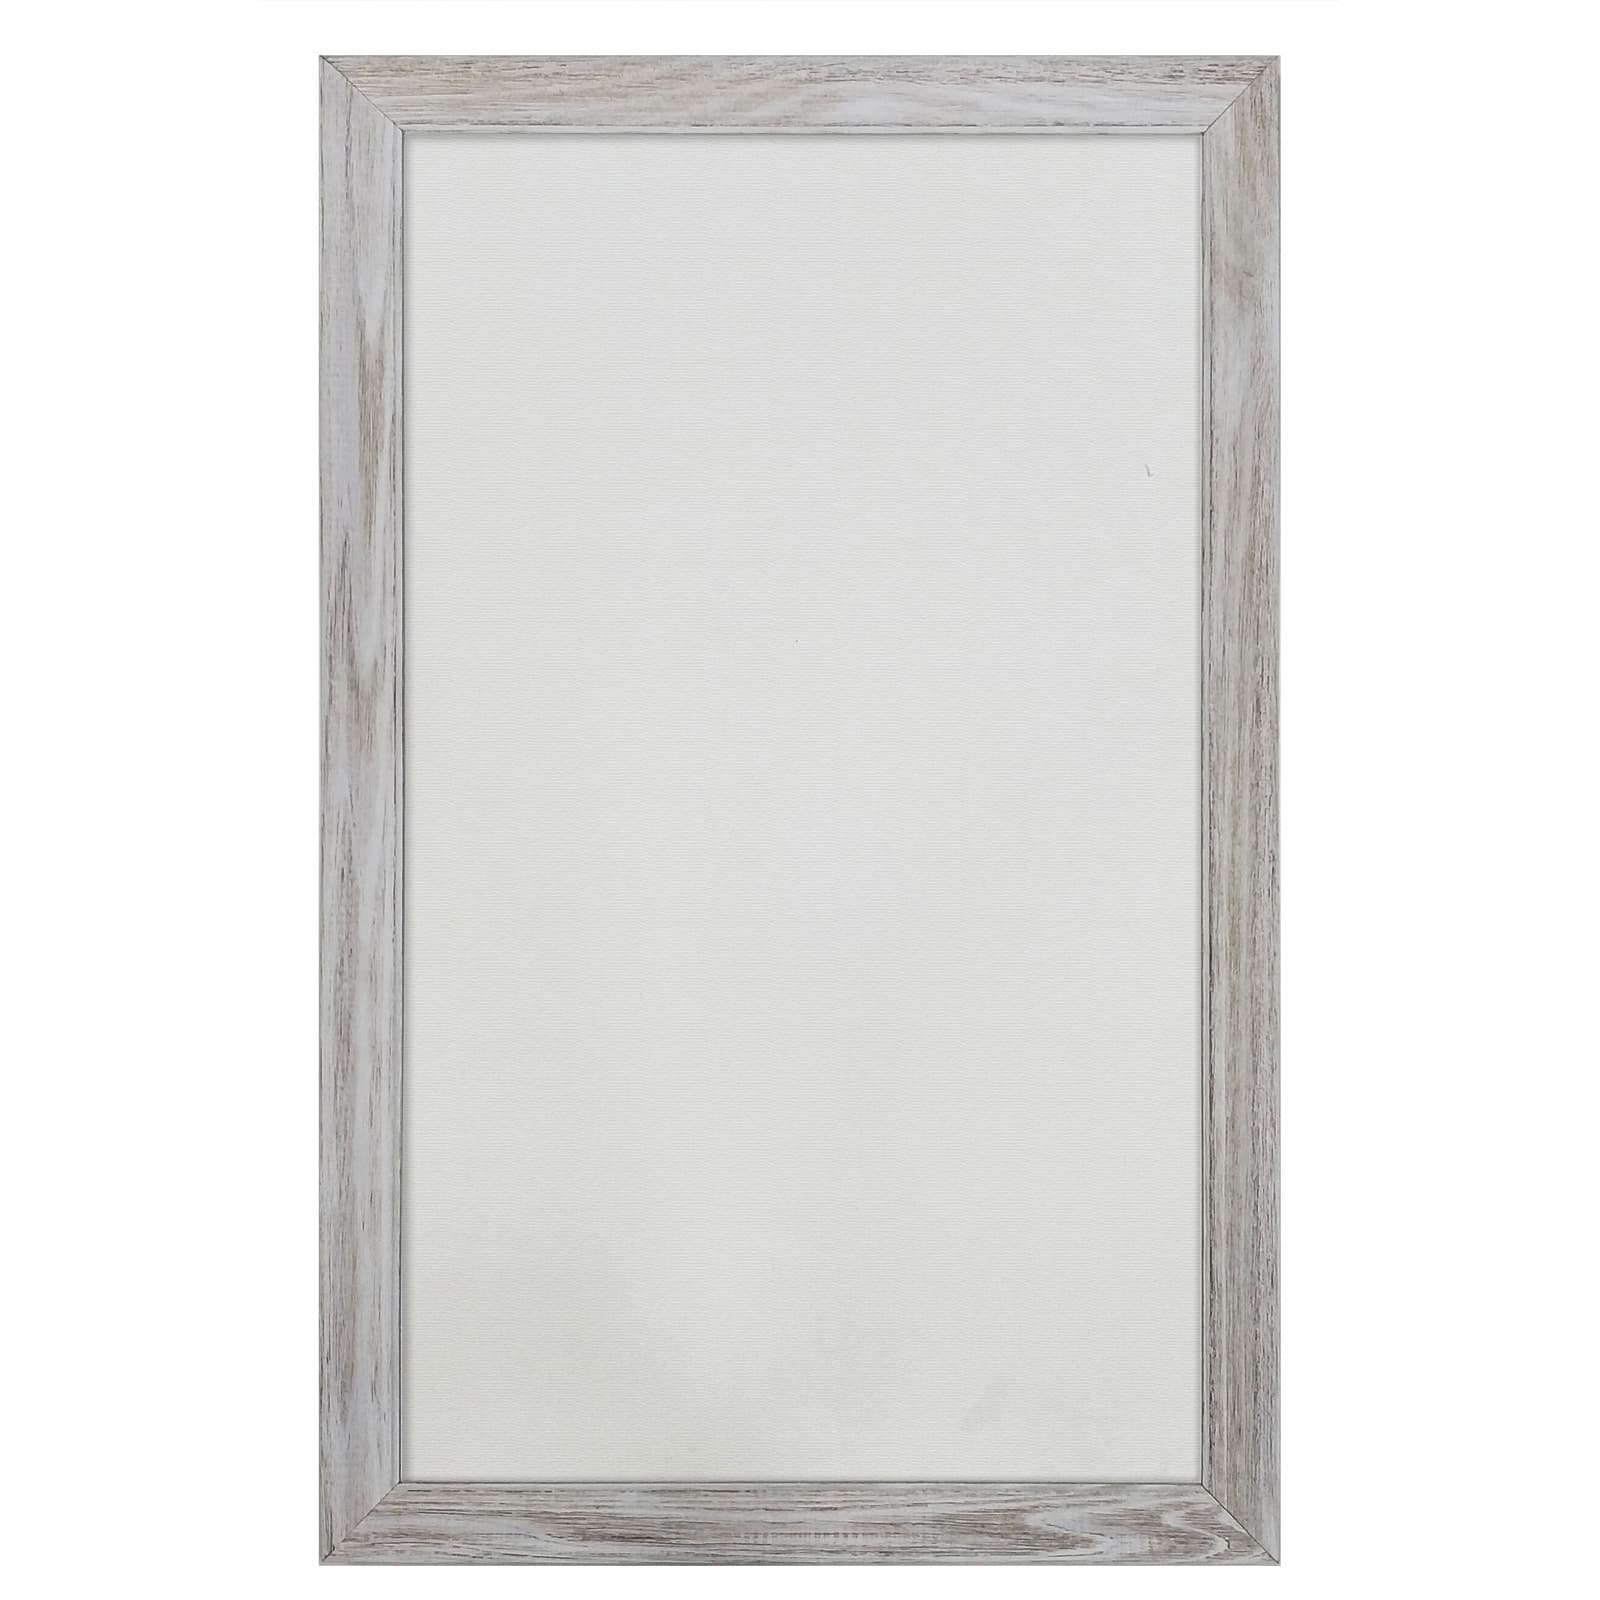 White Framed Wall Pinboard By Ashland® by Ashland